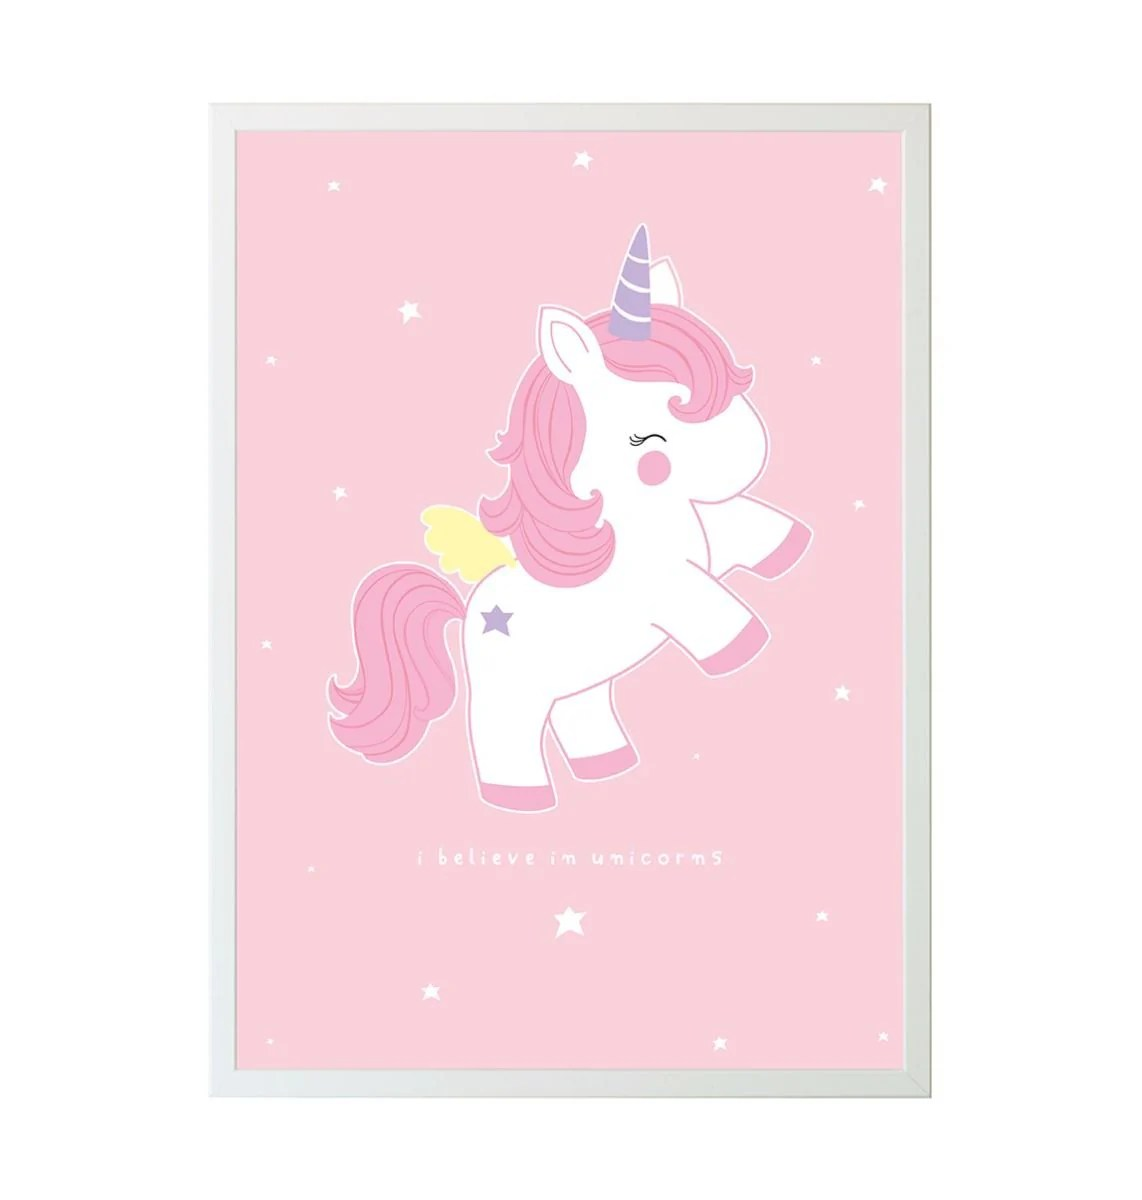 Cute Pink Glitter Wallpapers Baby Unicorn Quot I Believe In Unicorns Quot Poster The Unicorn